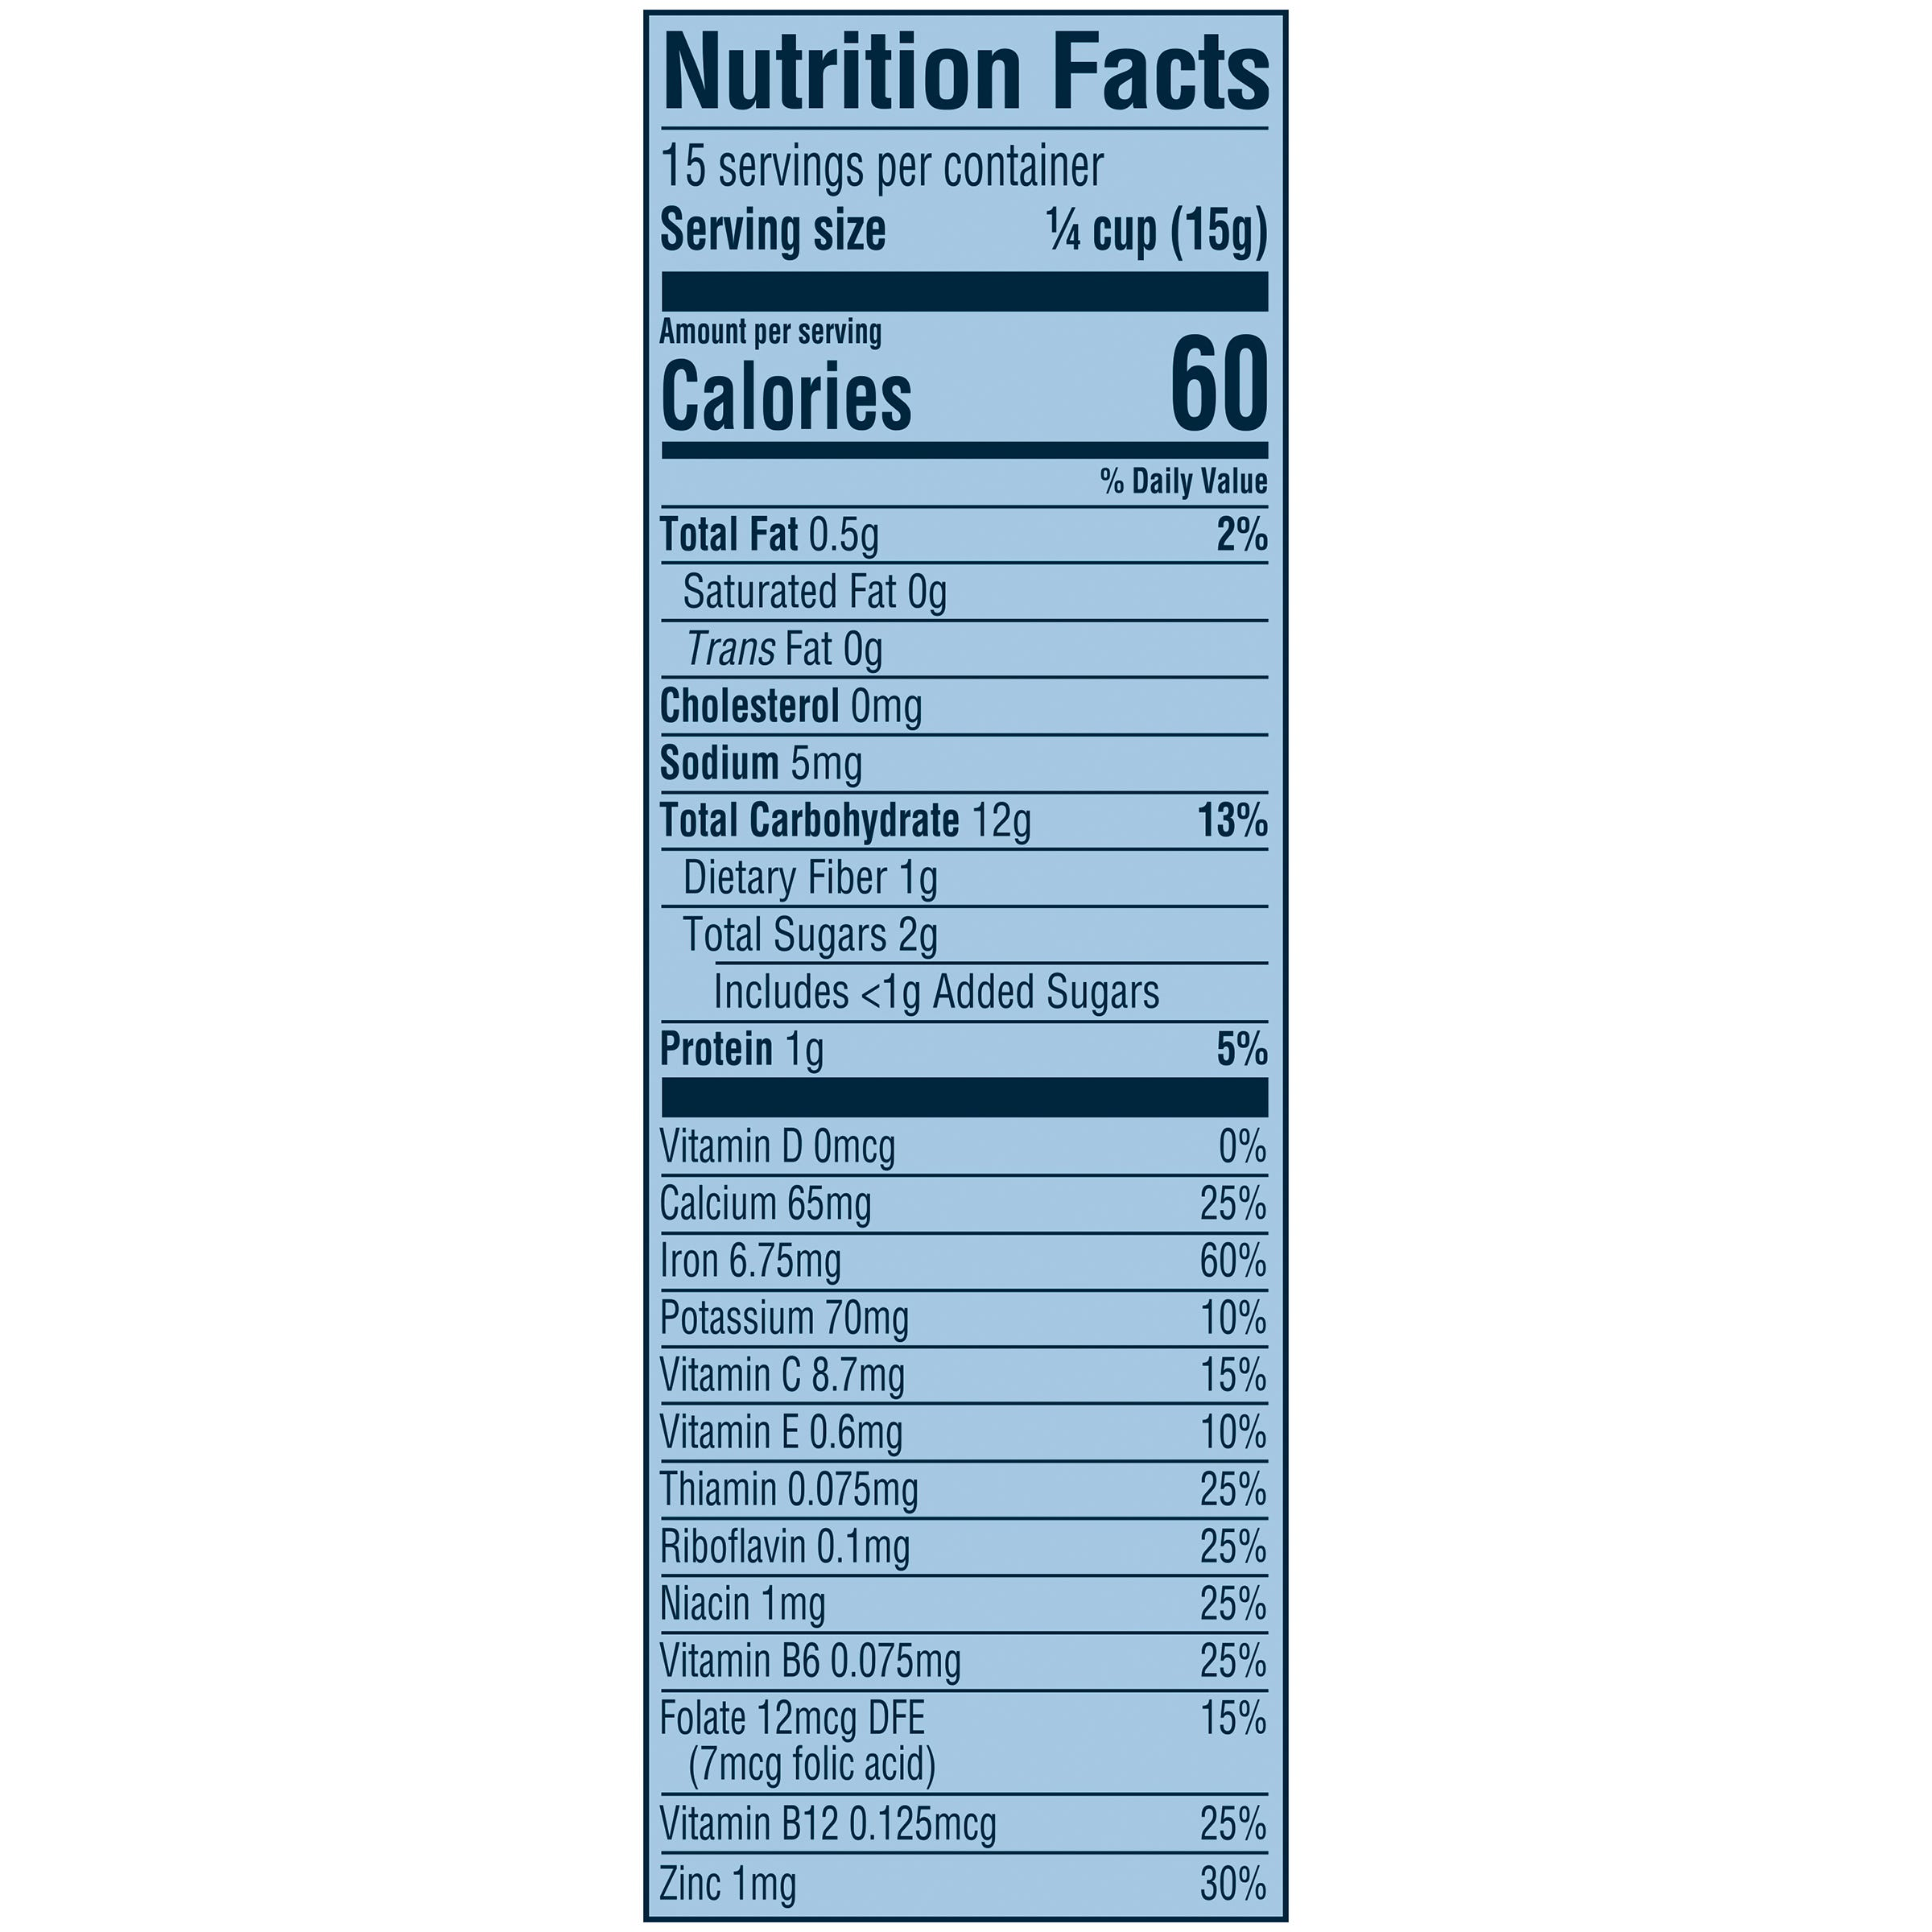 Whole Wheat Cereal Nutrition Information